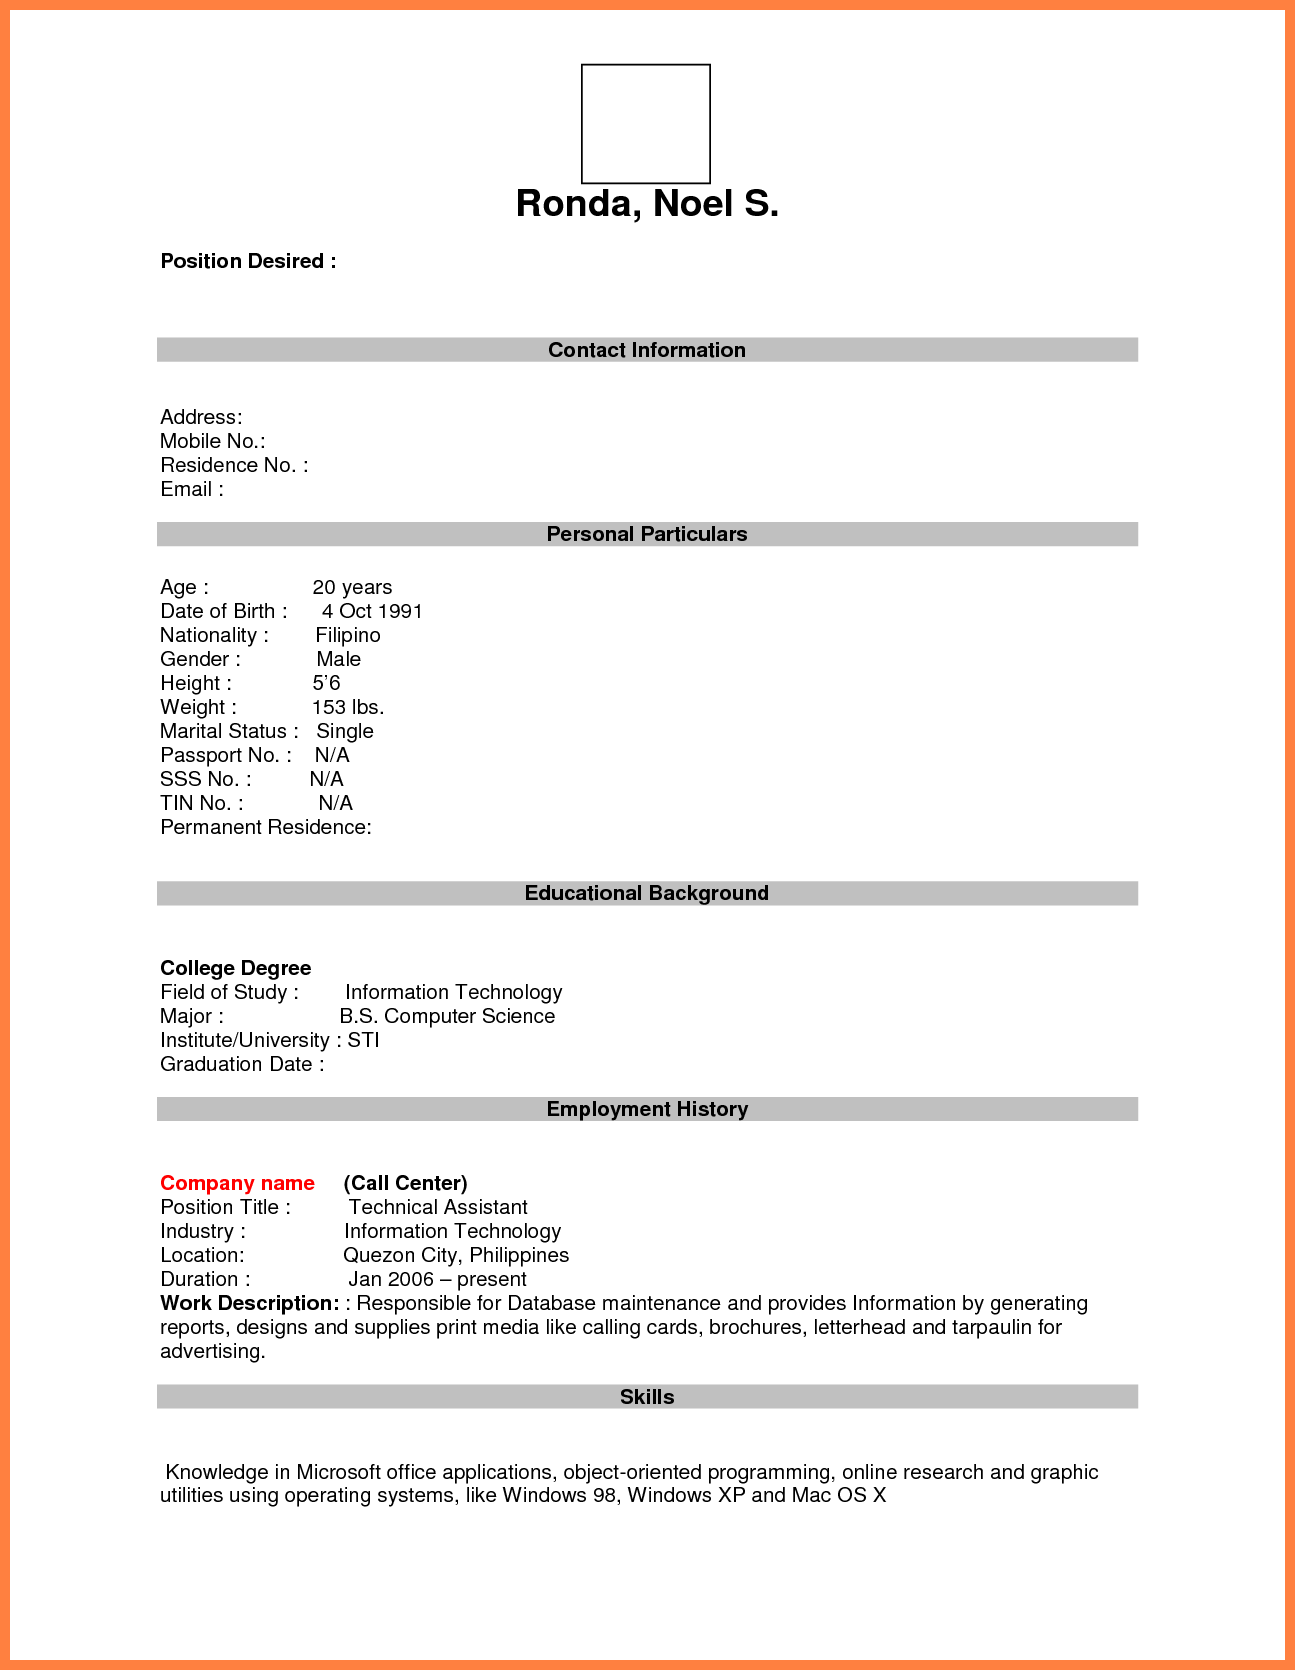 Awesome Format For Job Application Pdf Basic Appication Letter Blank Resume Form  Bussines Proposal First Time Free Intended Blank Resume Form